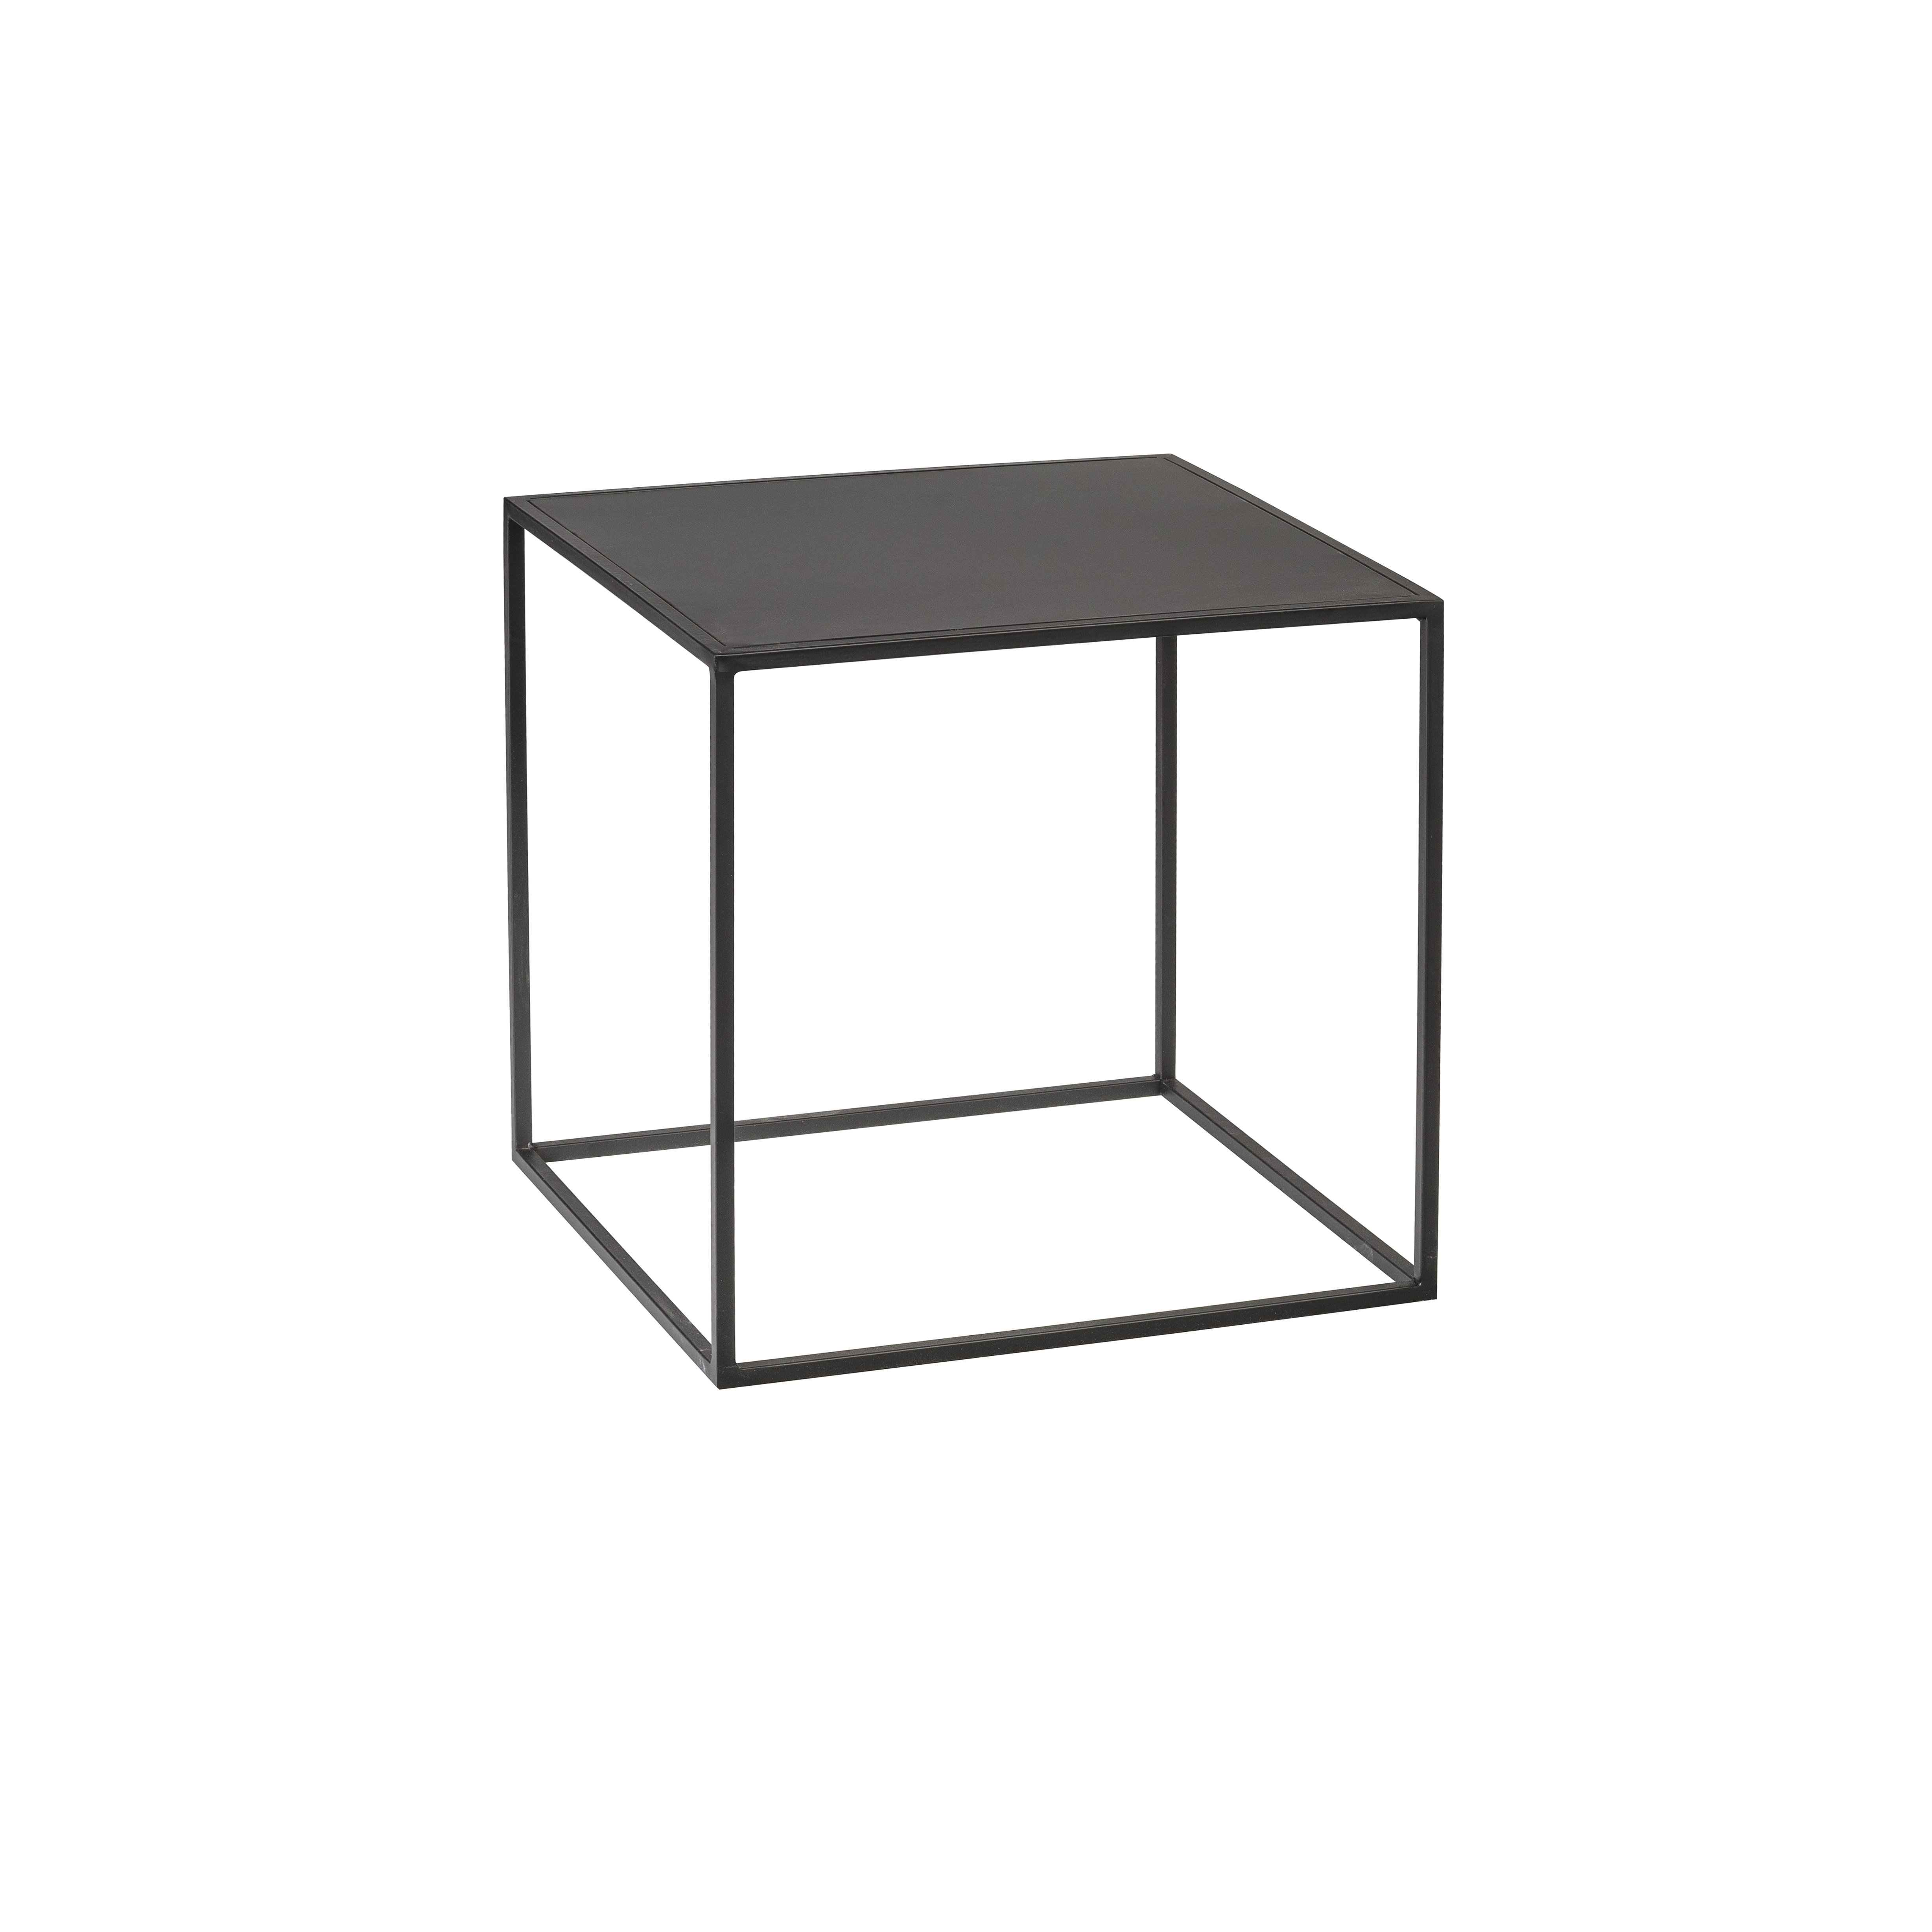 Frame table 40